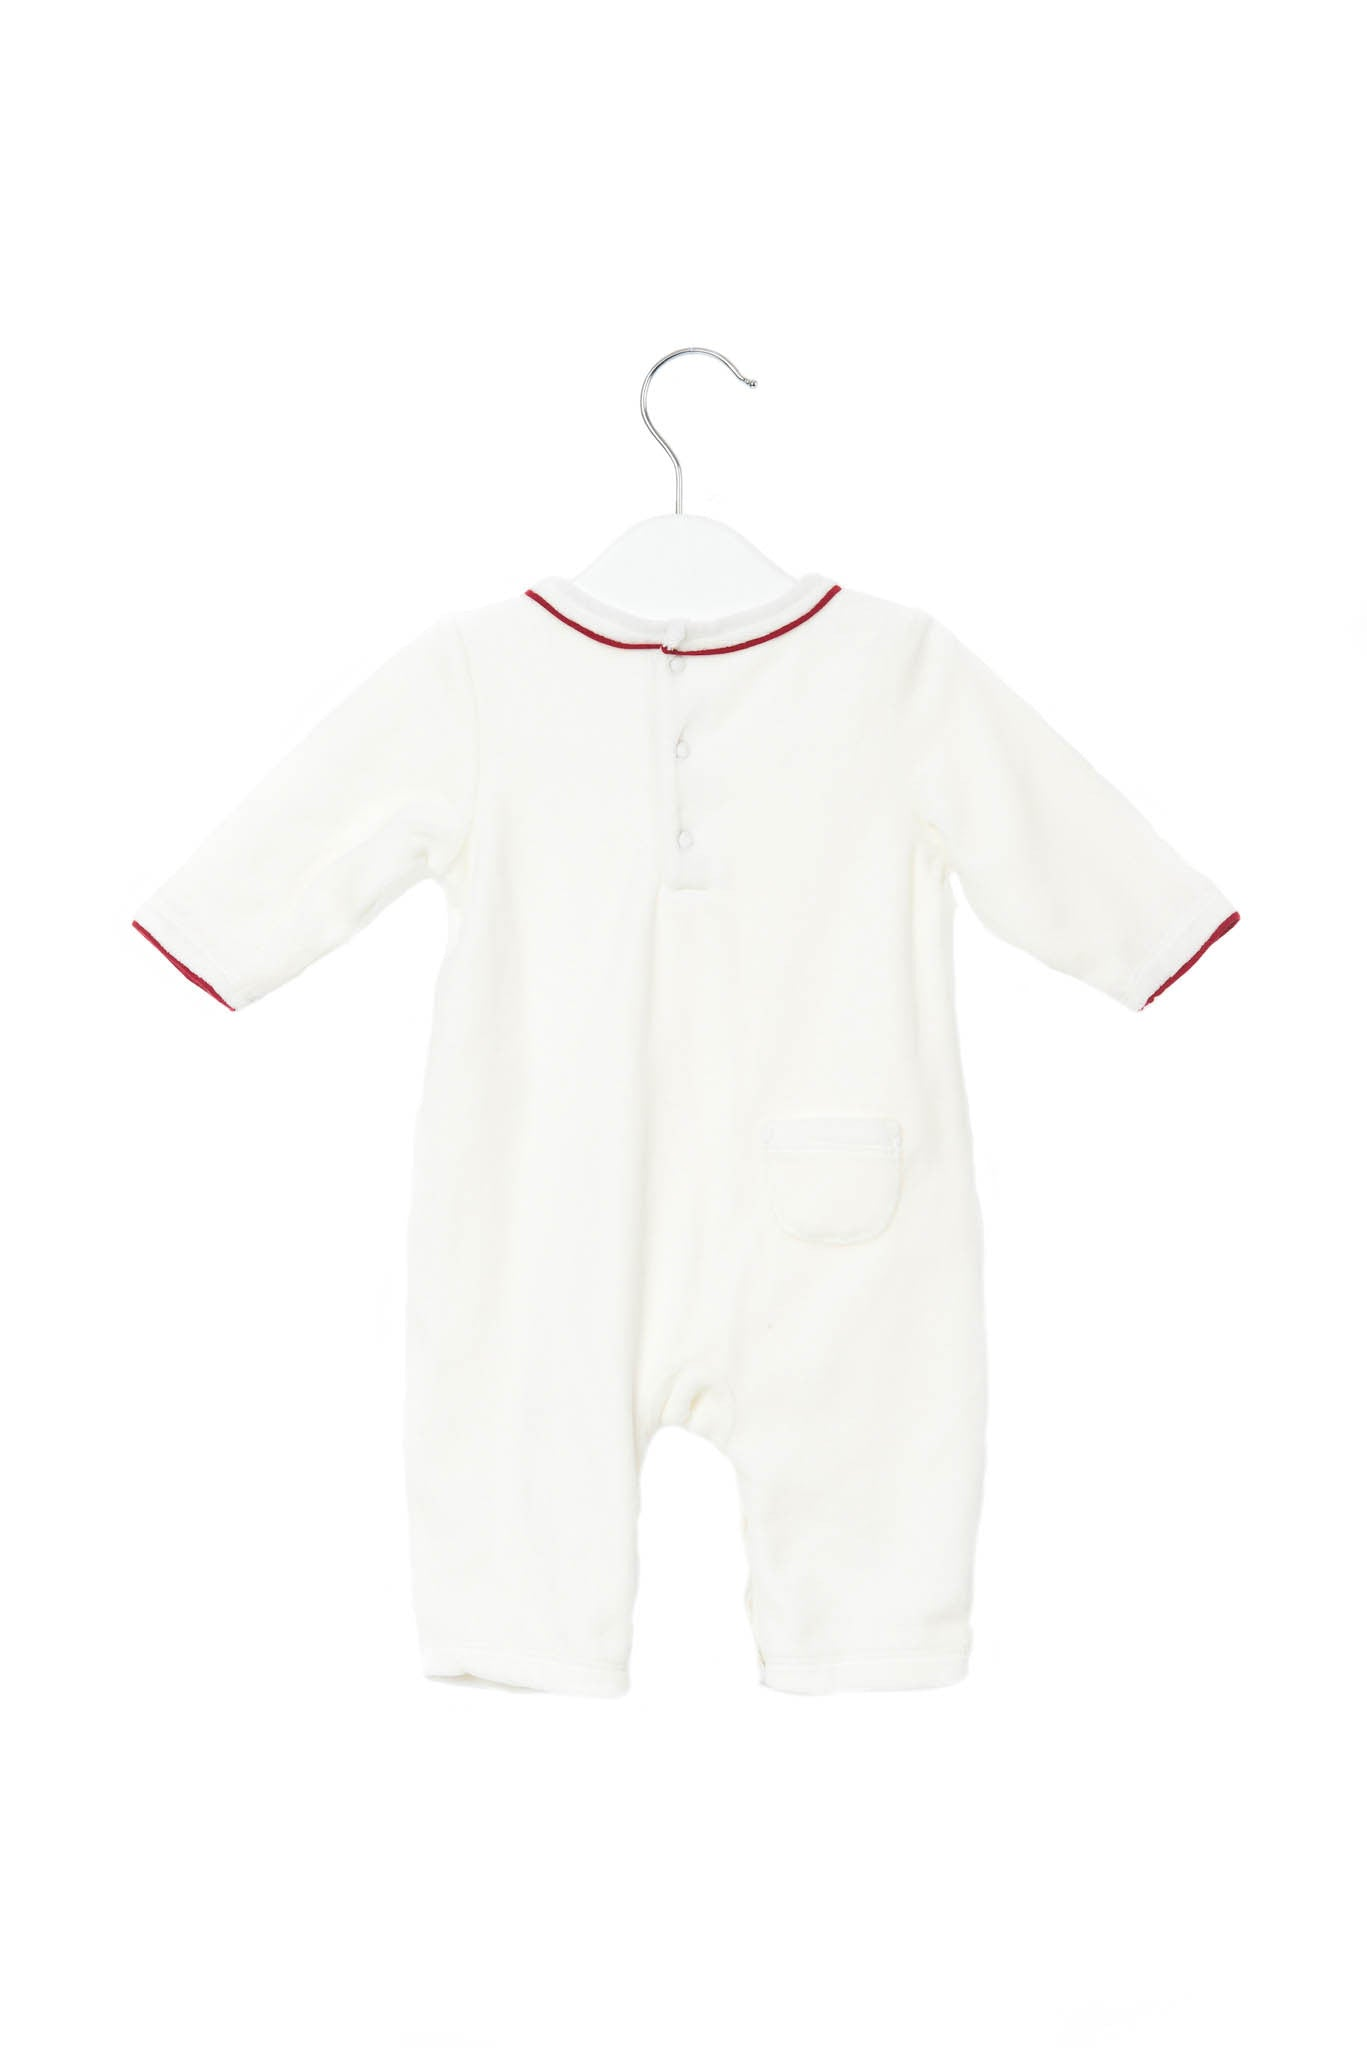 10001239 Janie & Jack Baby-Jumpsuit 0-3M at Retykle